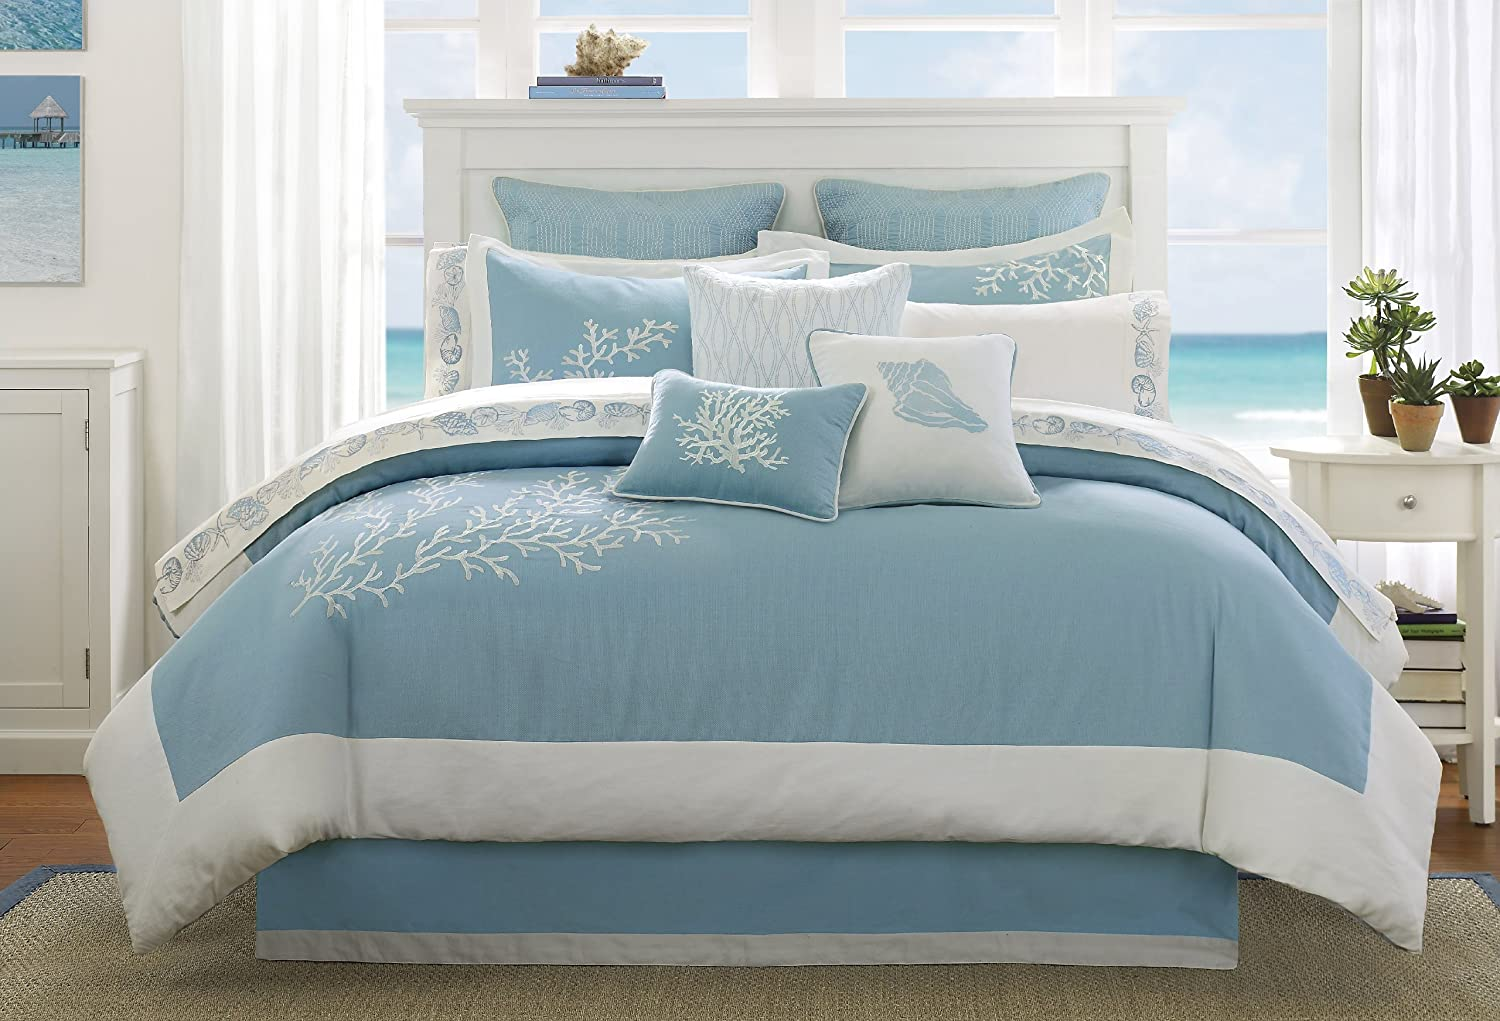 Blue bedroom sets for girls - Coastline Queen Comforter Set